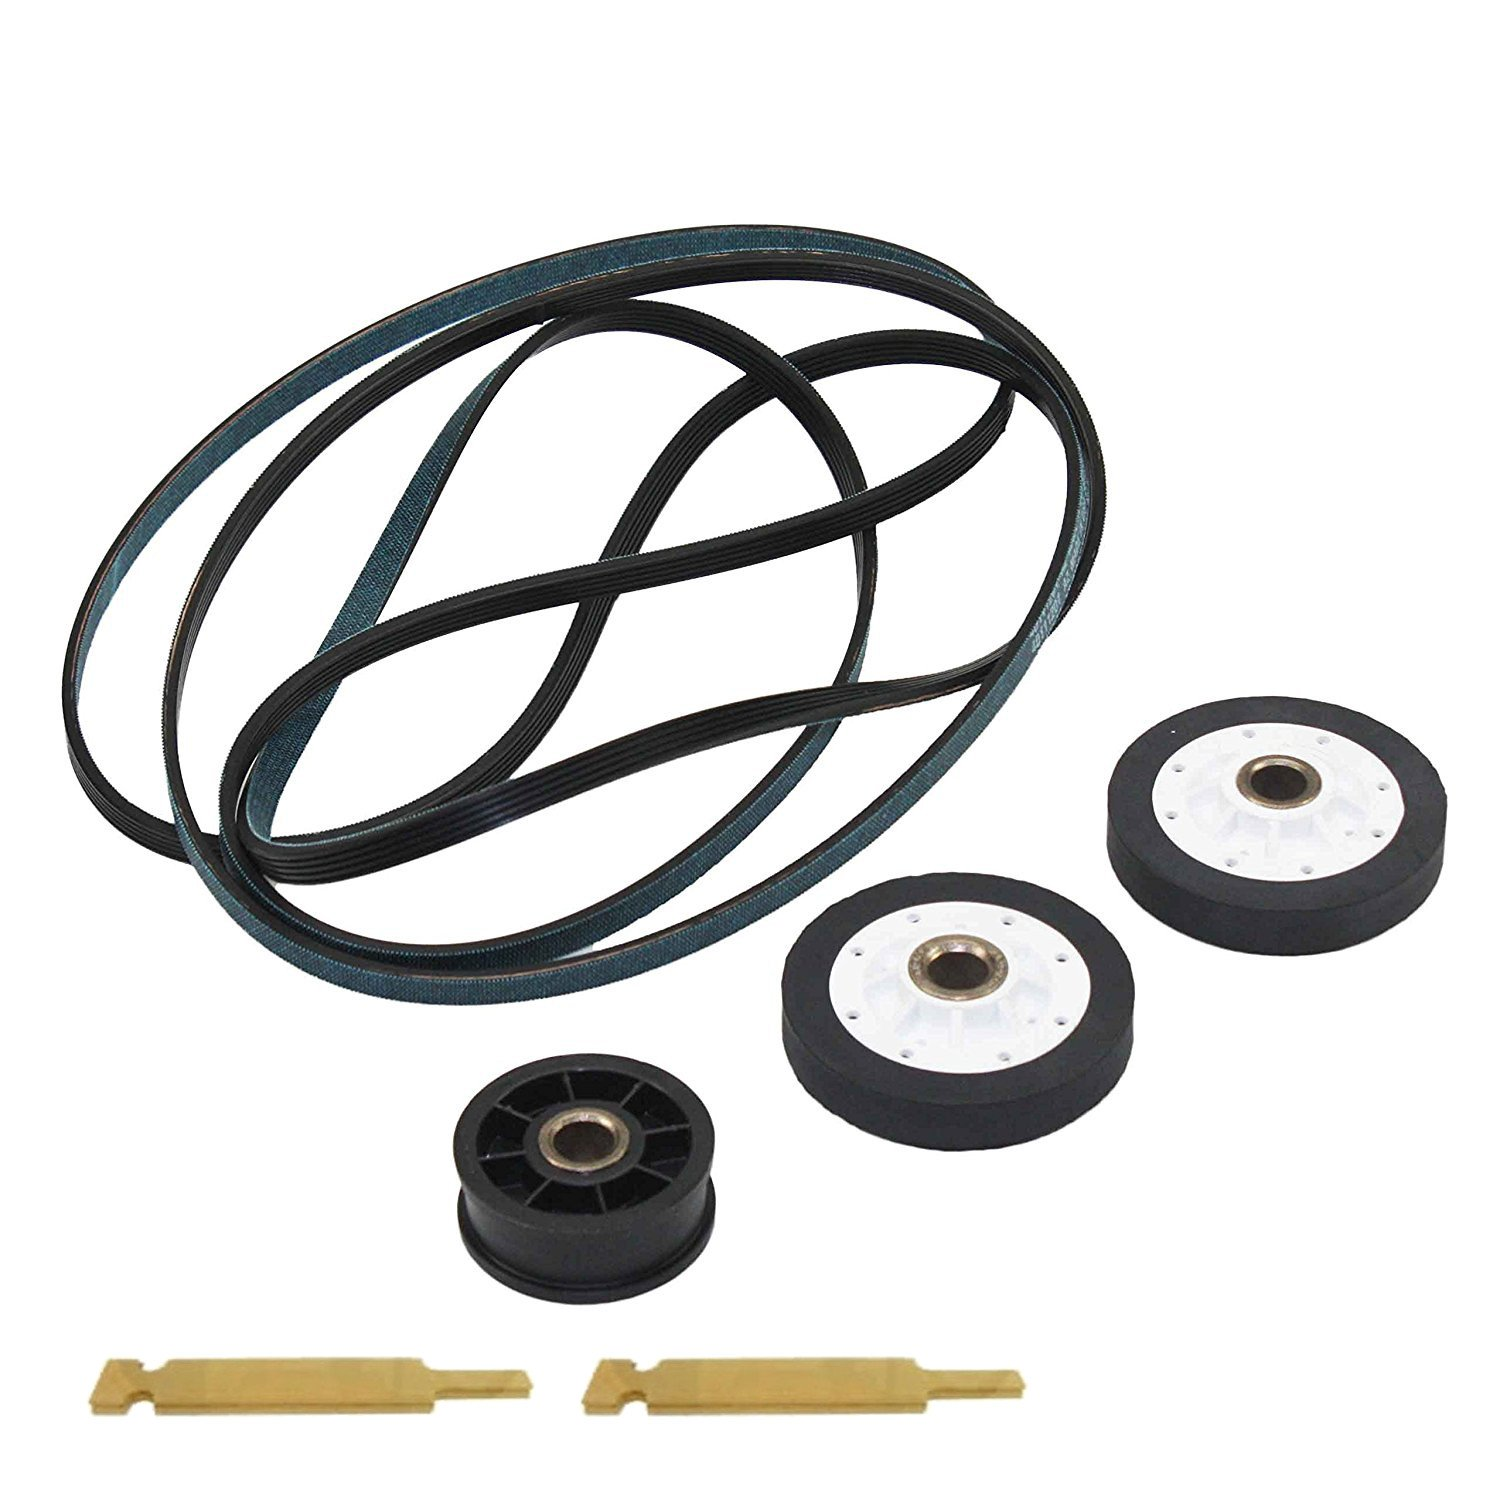 MAYT-1 Dryer Repair Kit Part # 40111201, 37001042,37001298,Y54414 Replacement Kit for Amana, Maytag, Admiral,